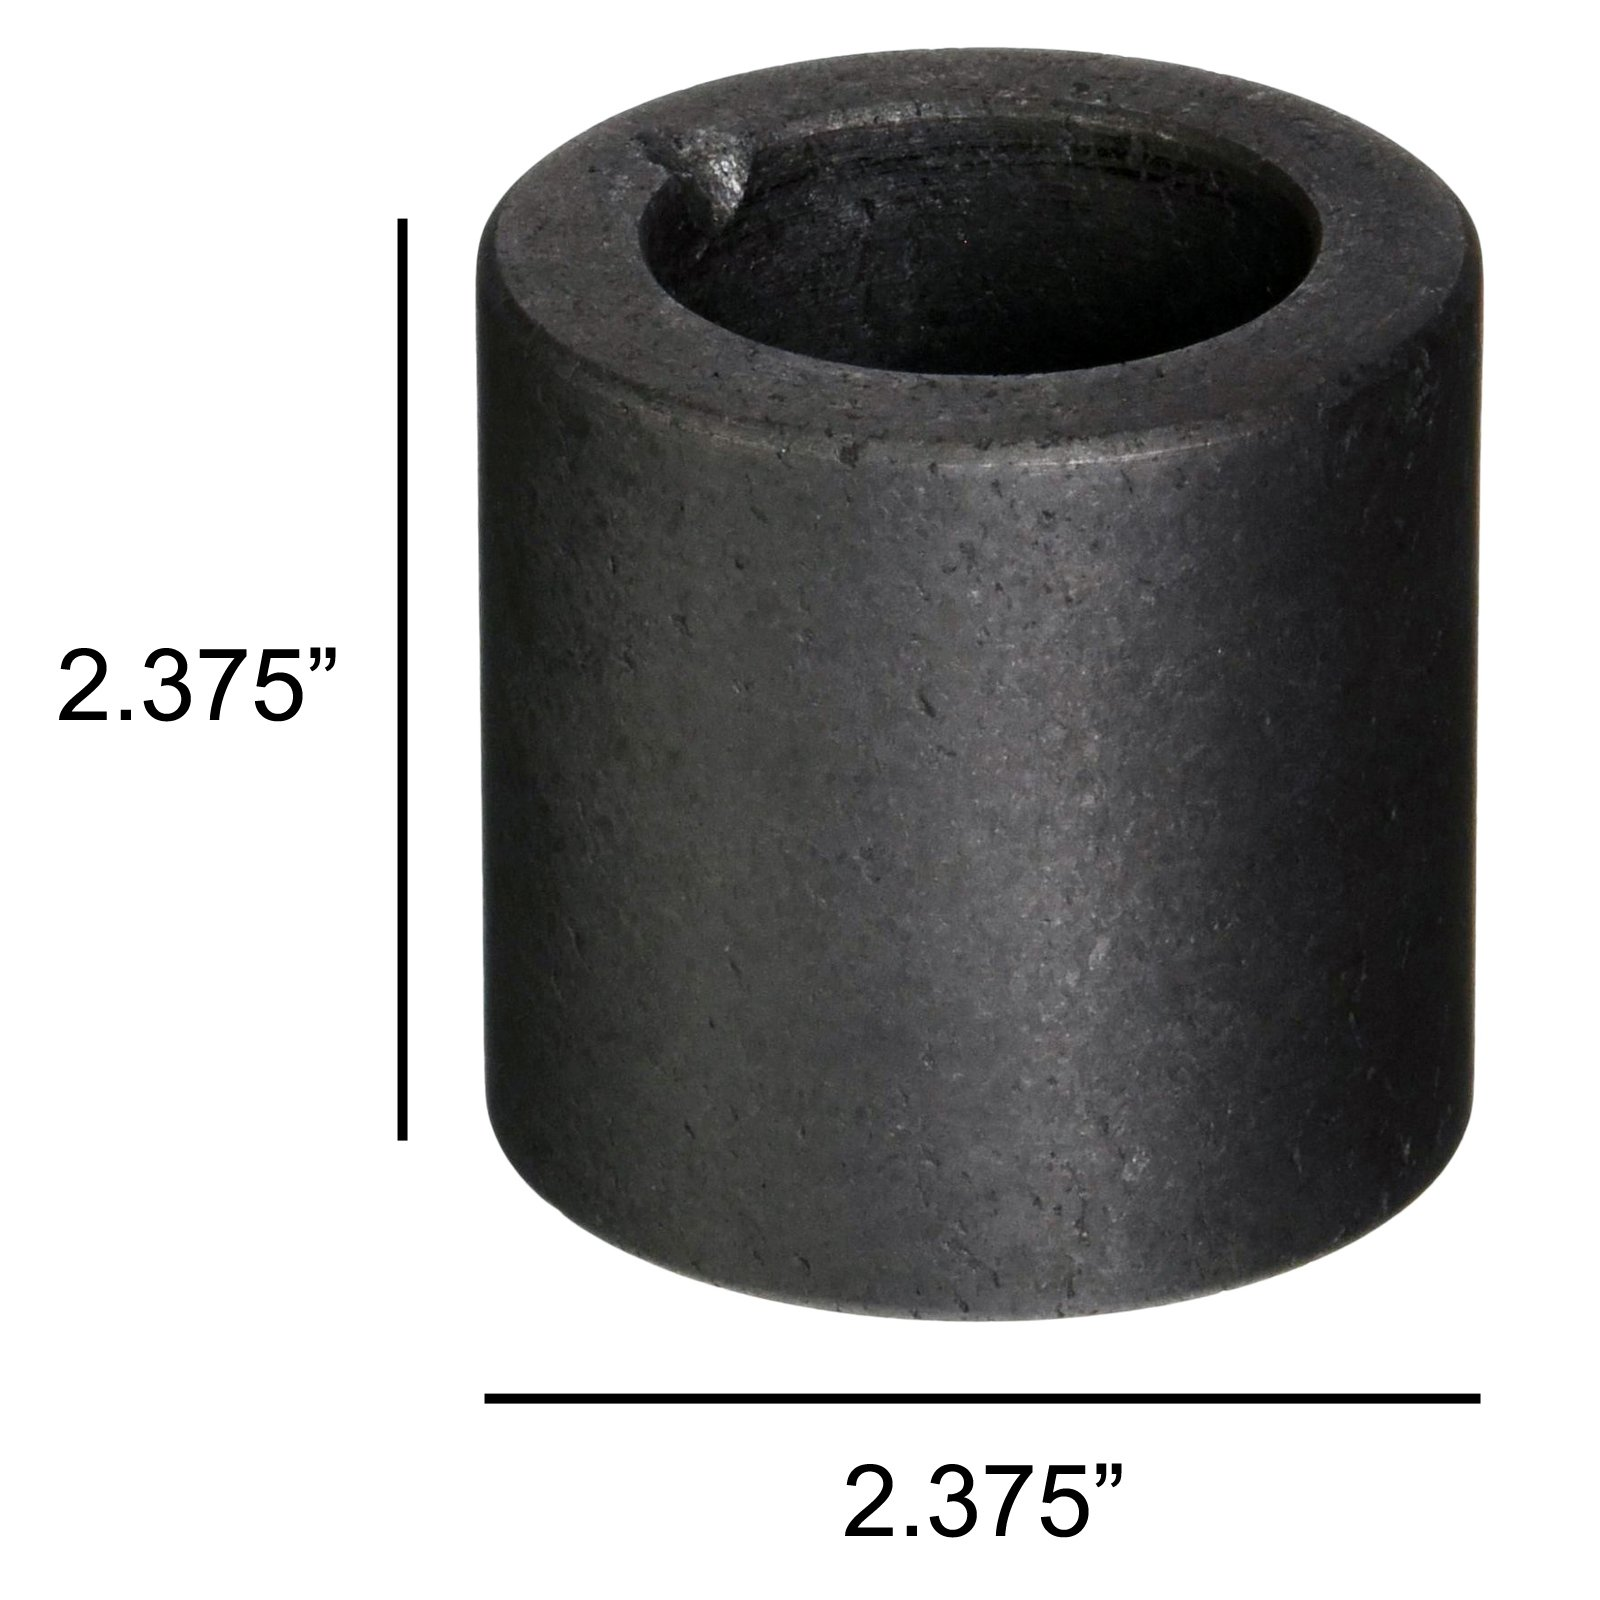 Universal Tool Graphite Crucible for Melting Gold and Silver 2.375 by 2.375 Inch